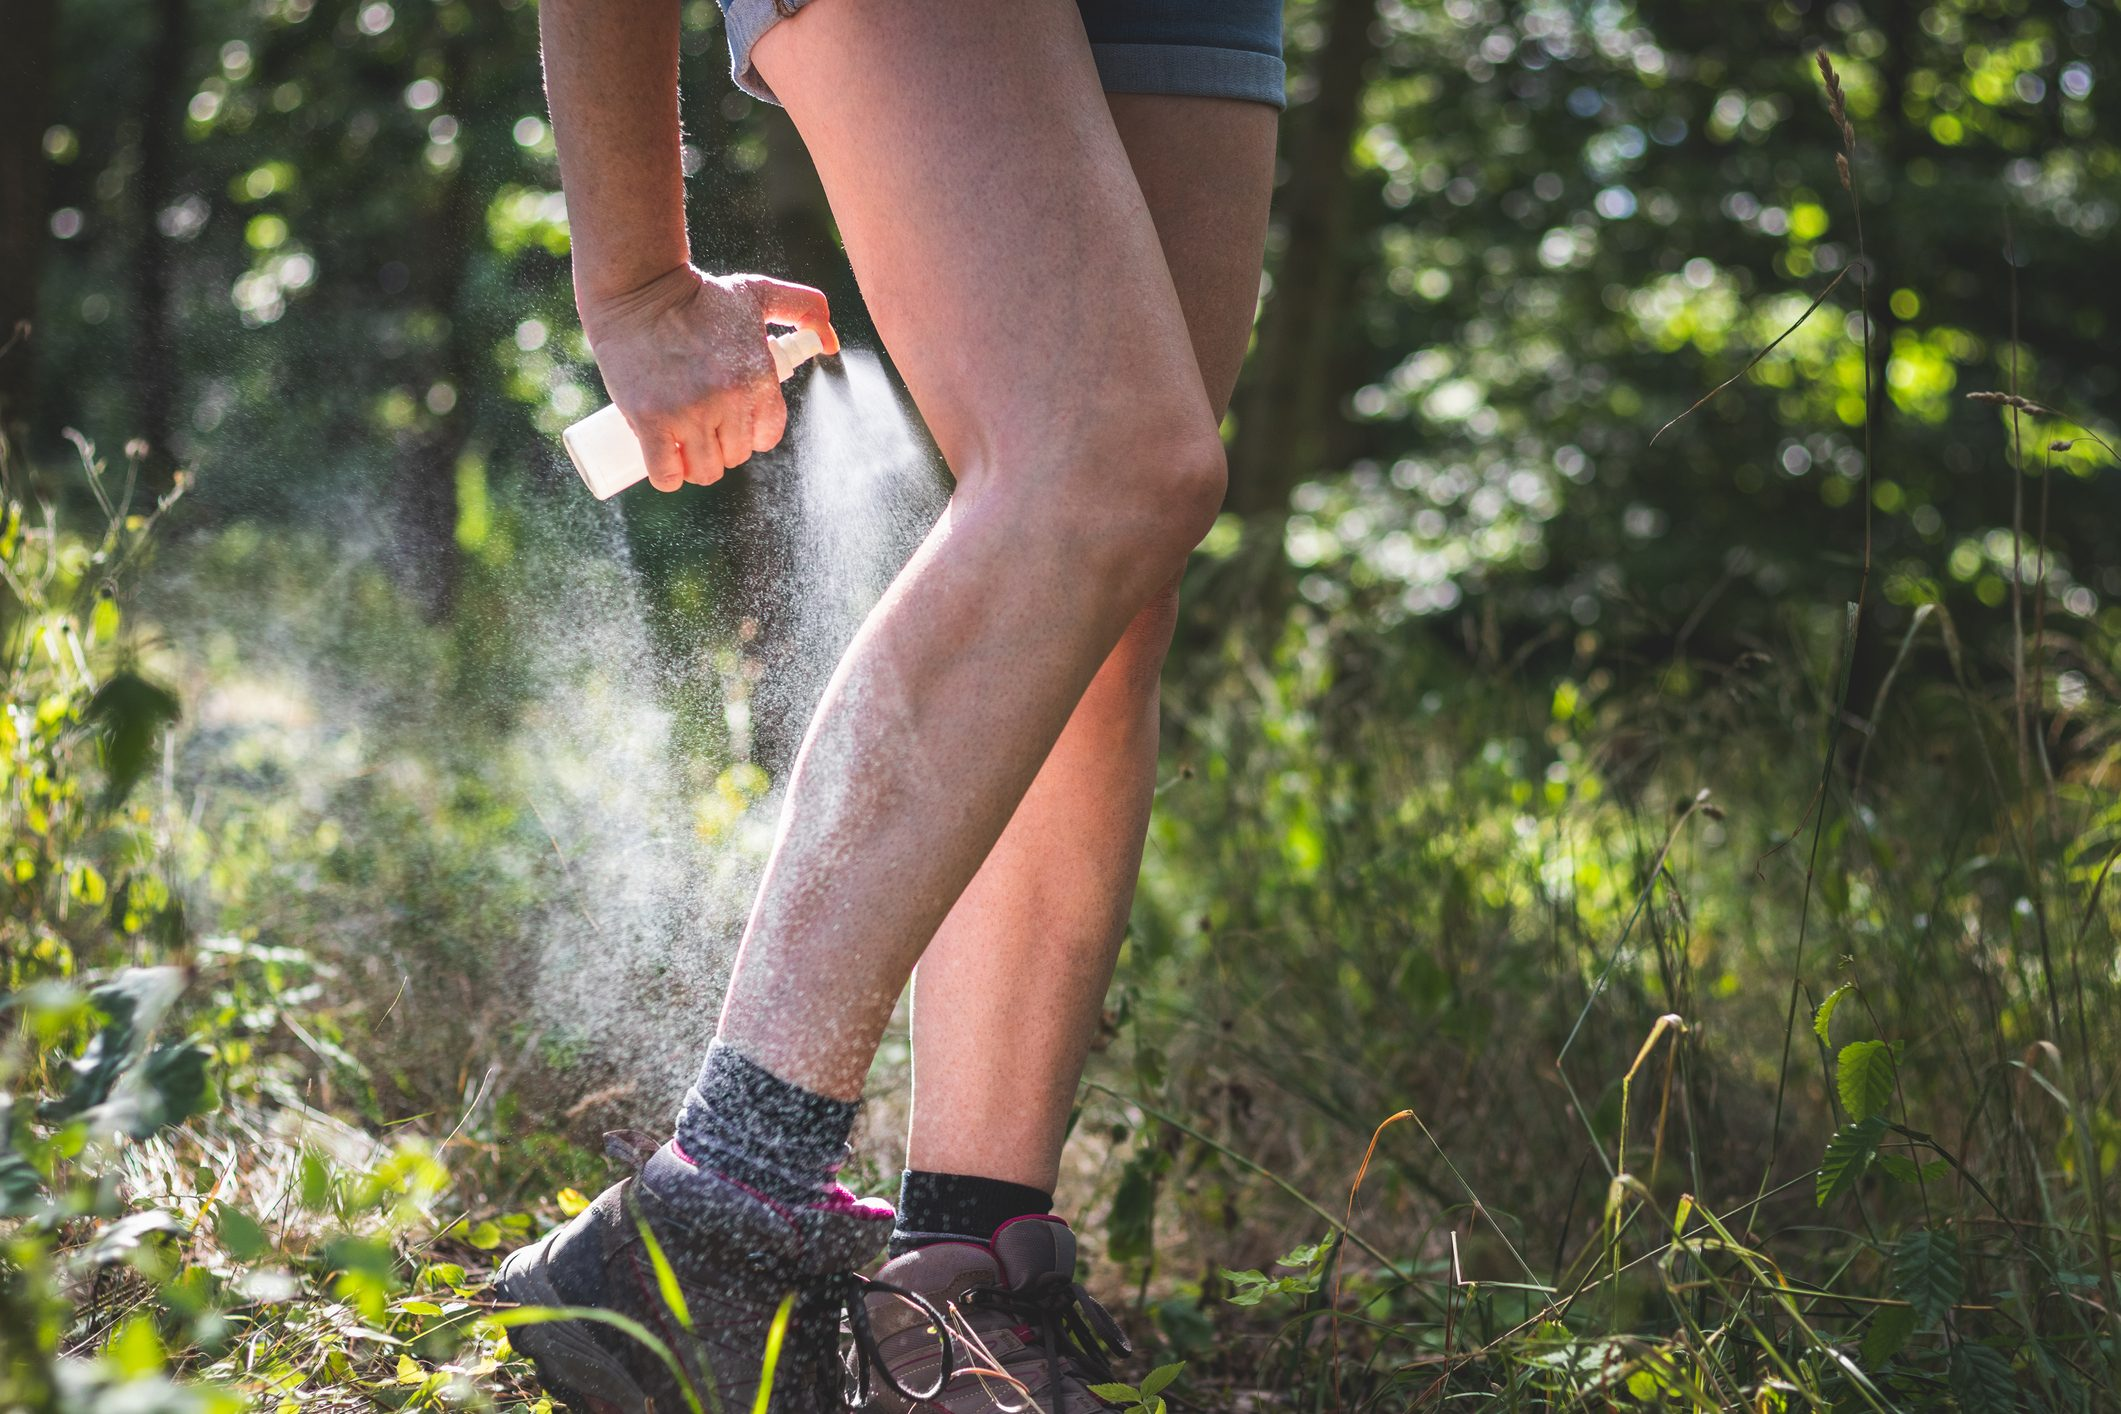 cropped shot of woman spraying bug spray on legs